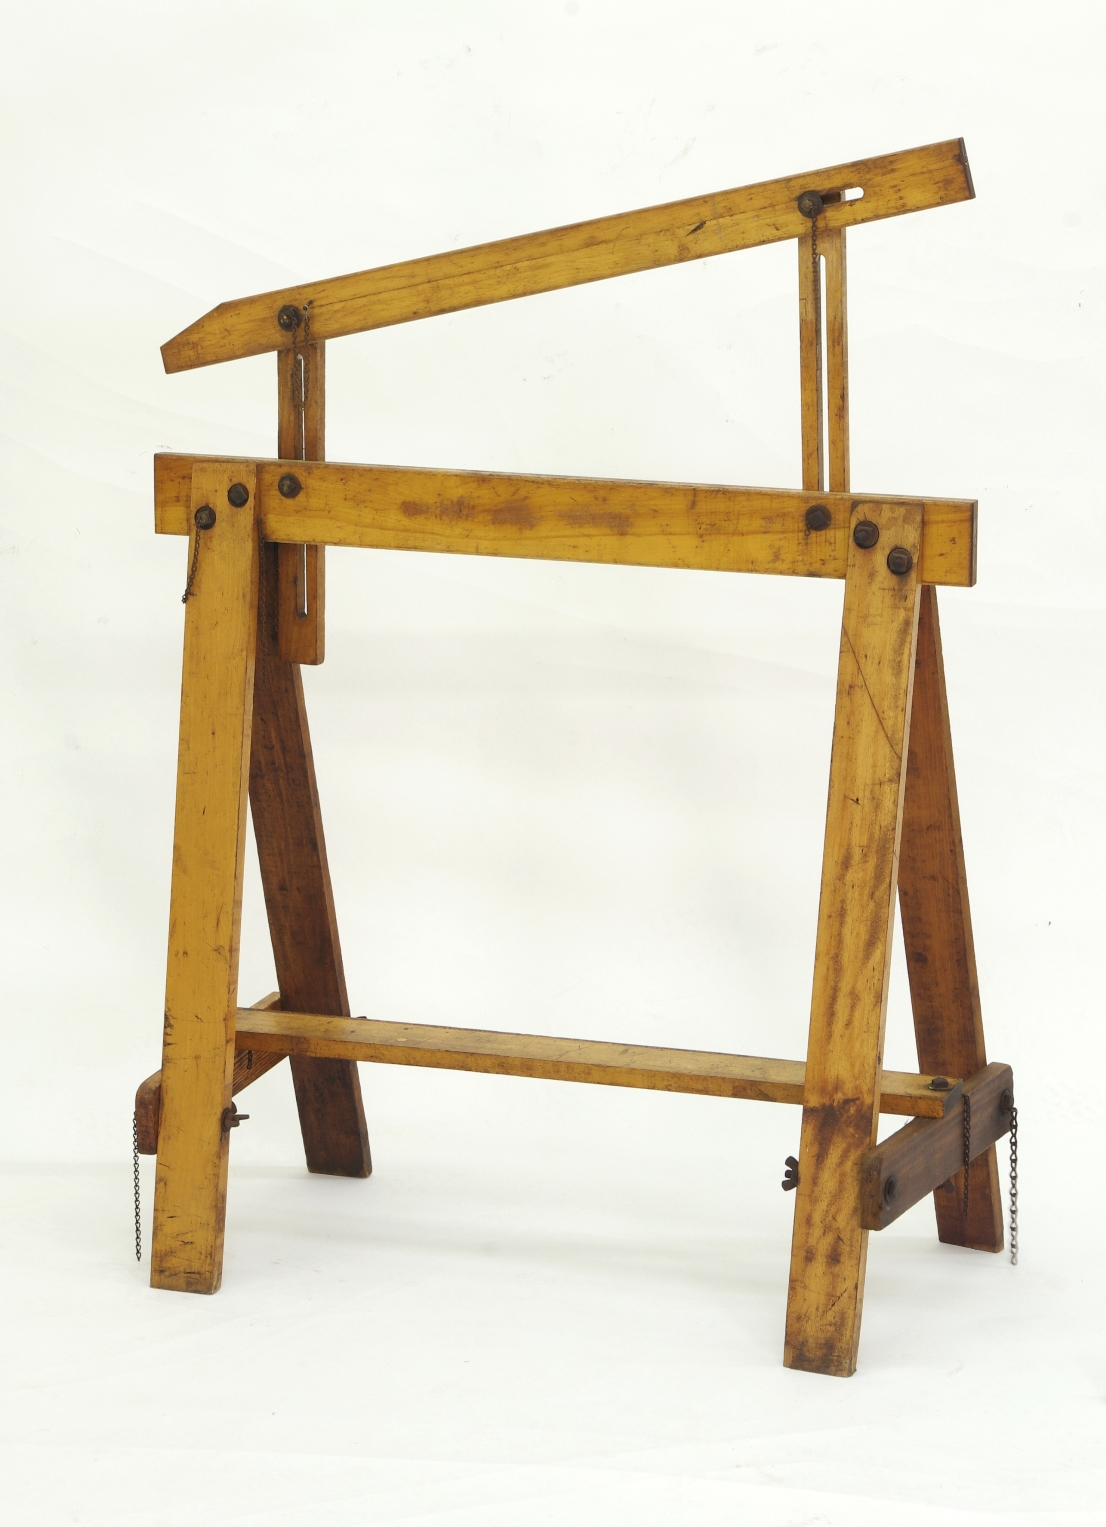 View 7: Pair of Adjustable Sawhorses c. 1920